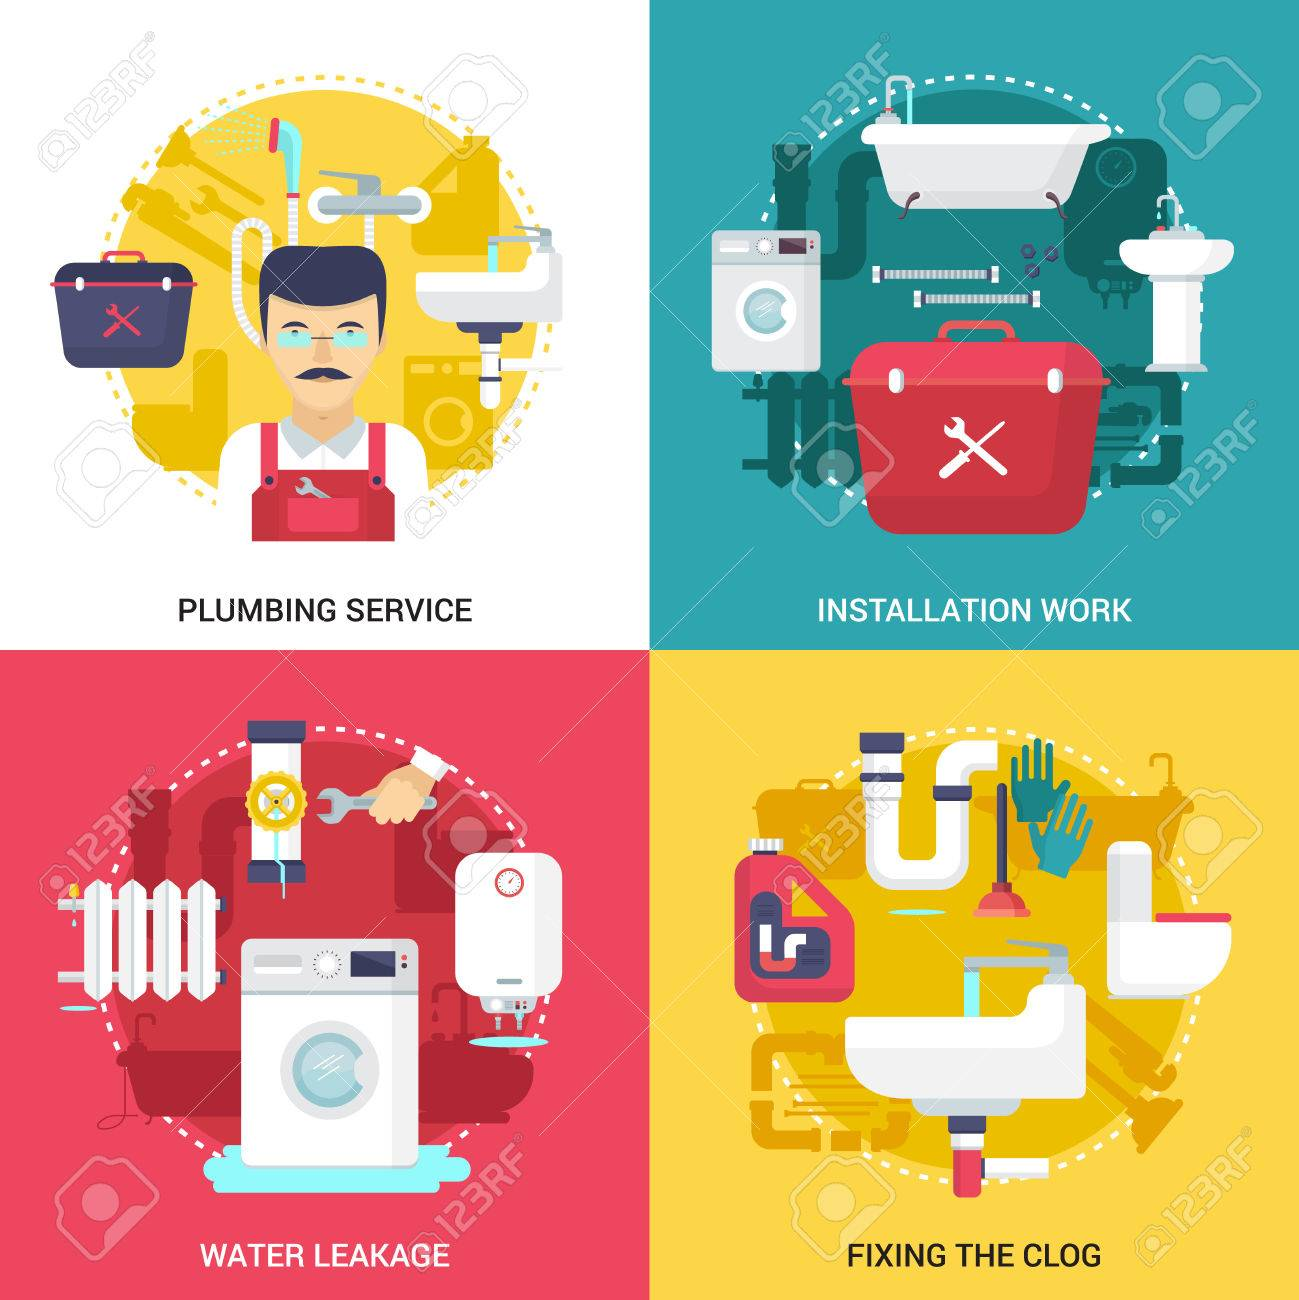 clogged drains cleaning and installations plumbing service concept rh 123rf com